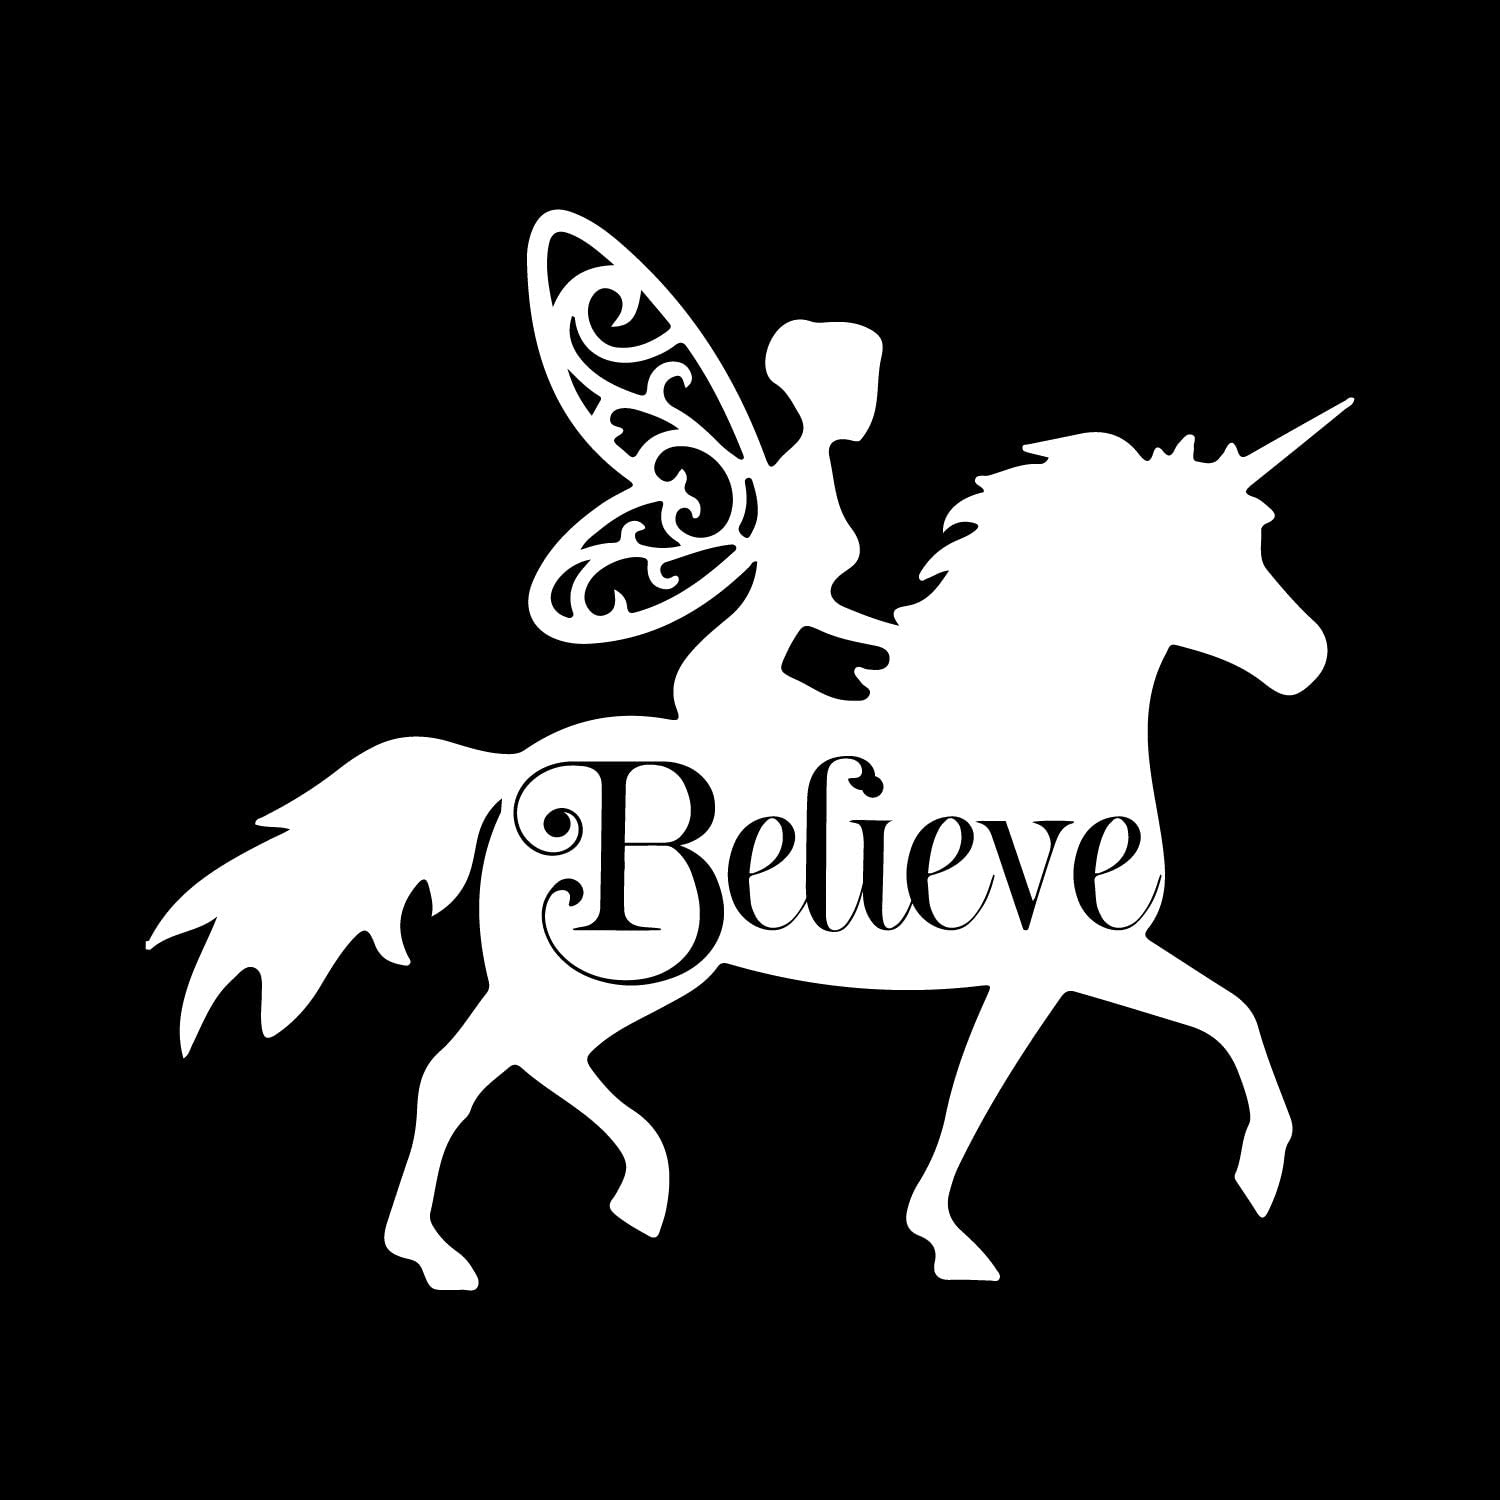 More Shiz Fairy Riding Unicorn Believe Vinyl Decal Sticker Car Truck Van SUV Window Wall Cup Laptop - One 5.5 Inch White Decal- MKS0677